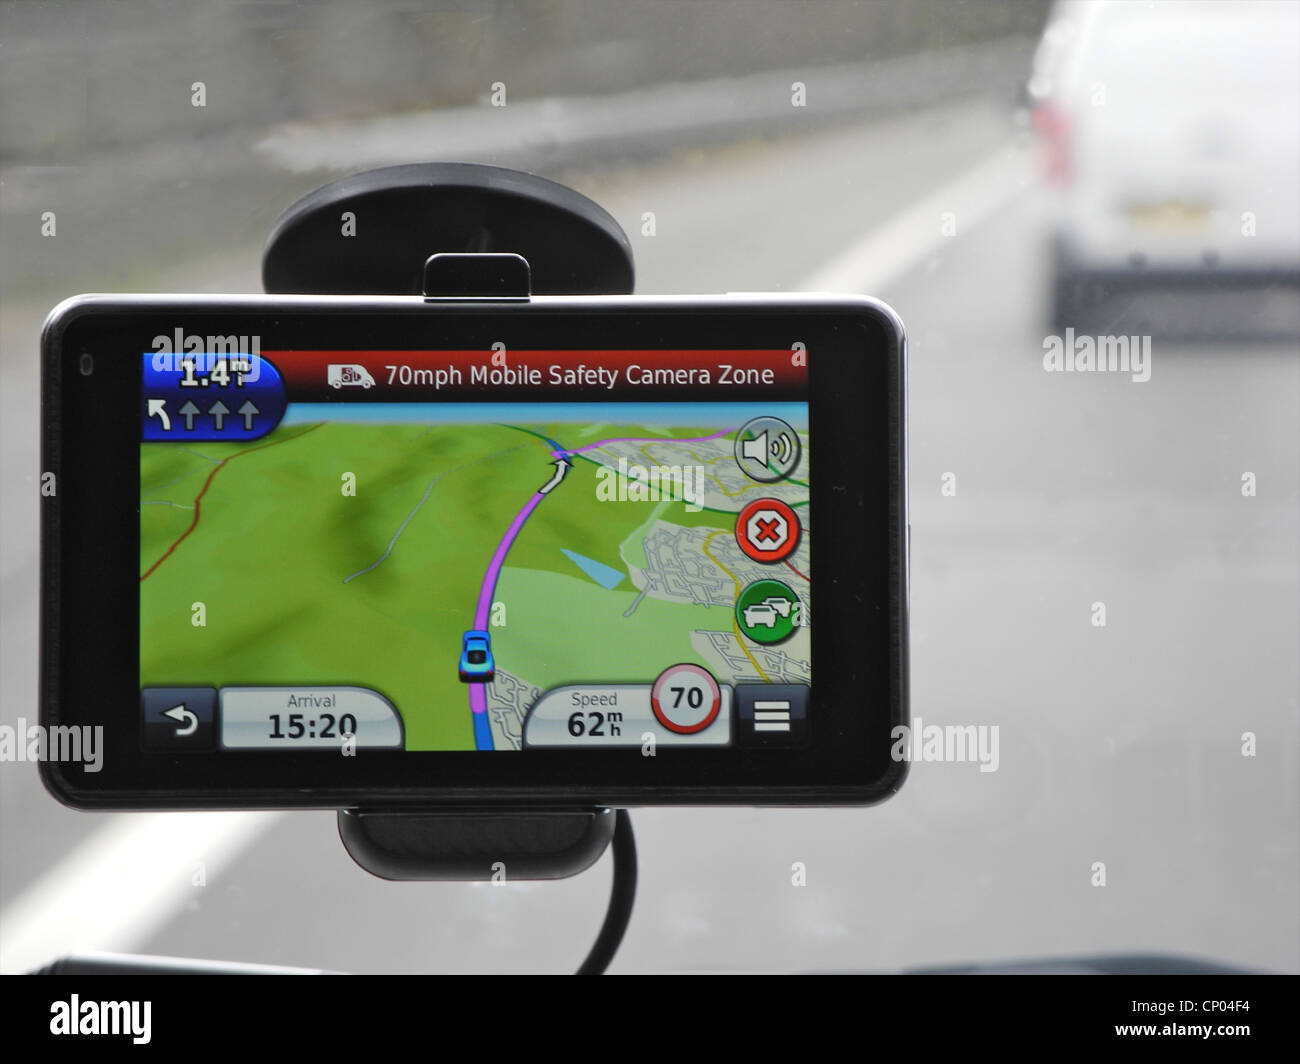 Sat Nav. Satellite Navigation unit device working in a car. - Stock Image